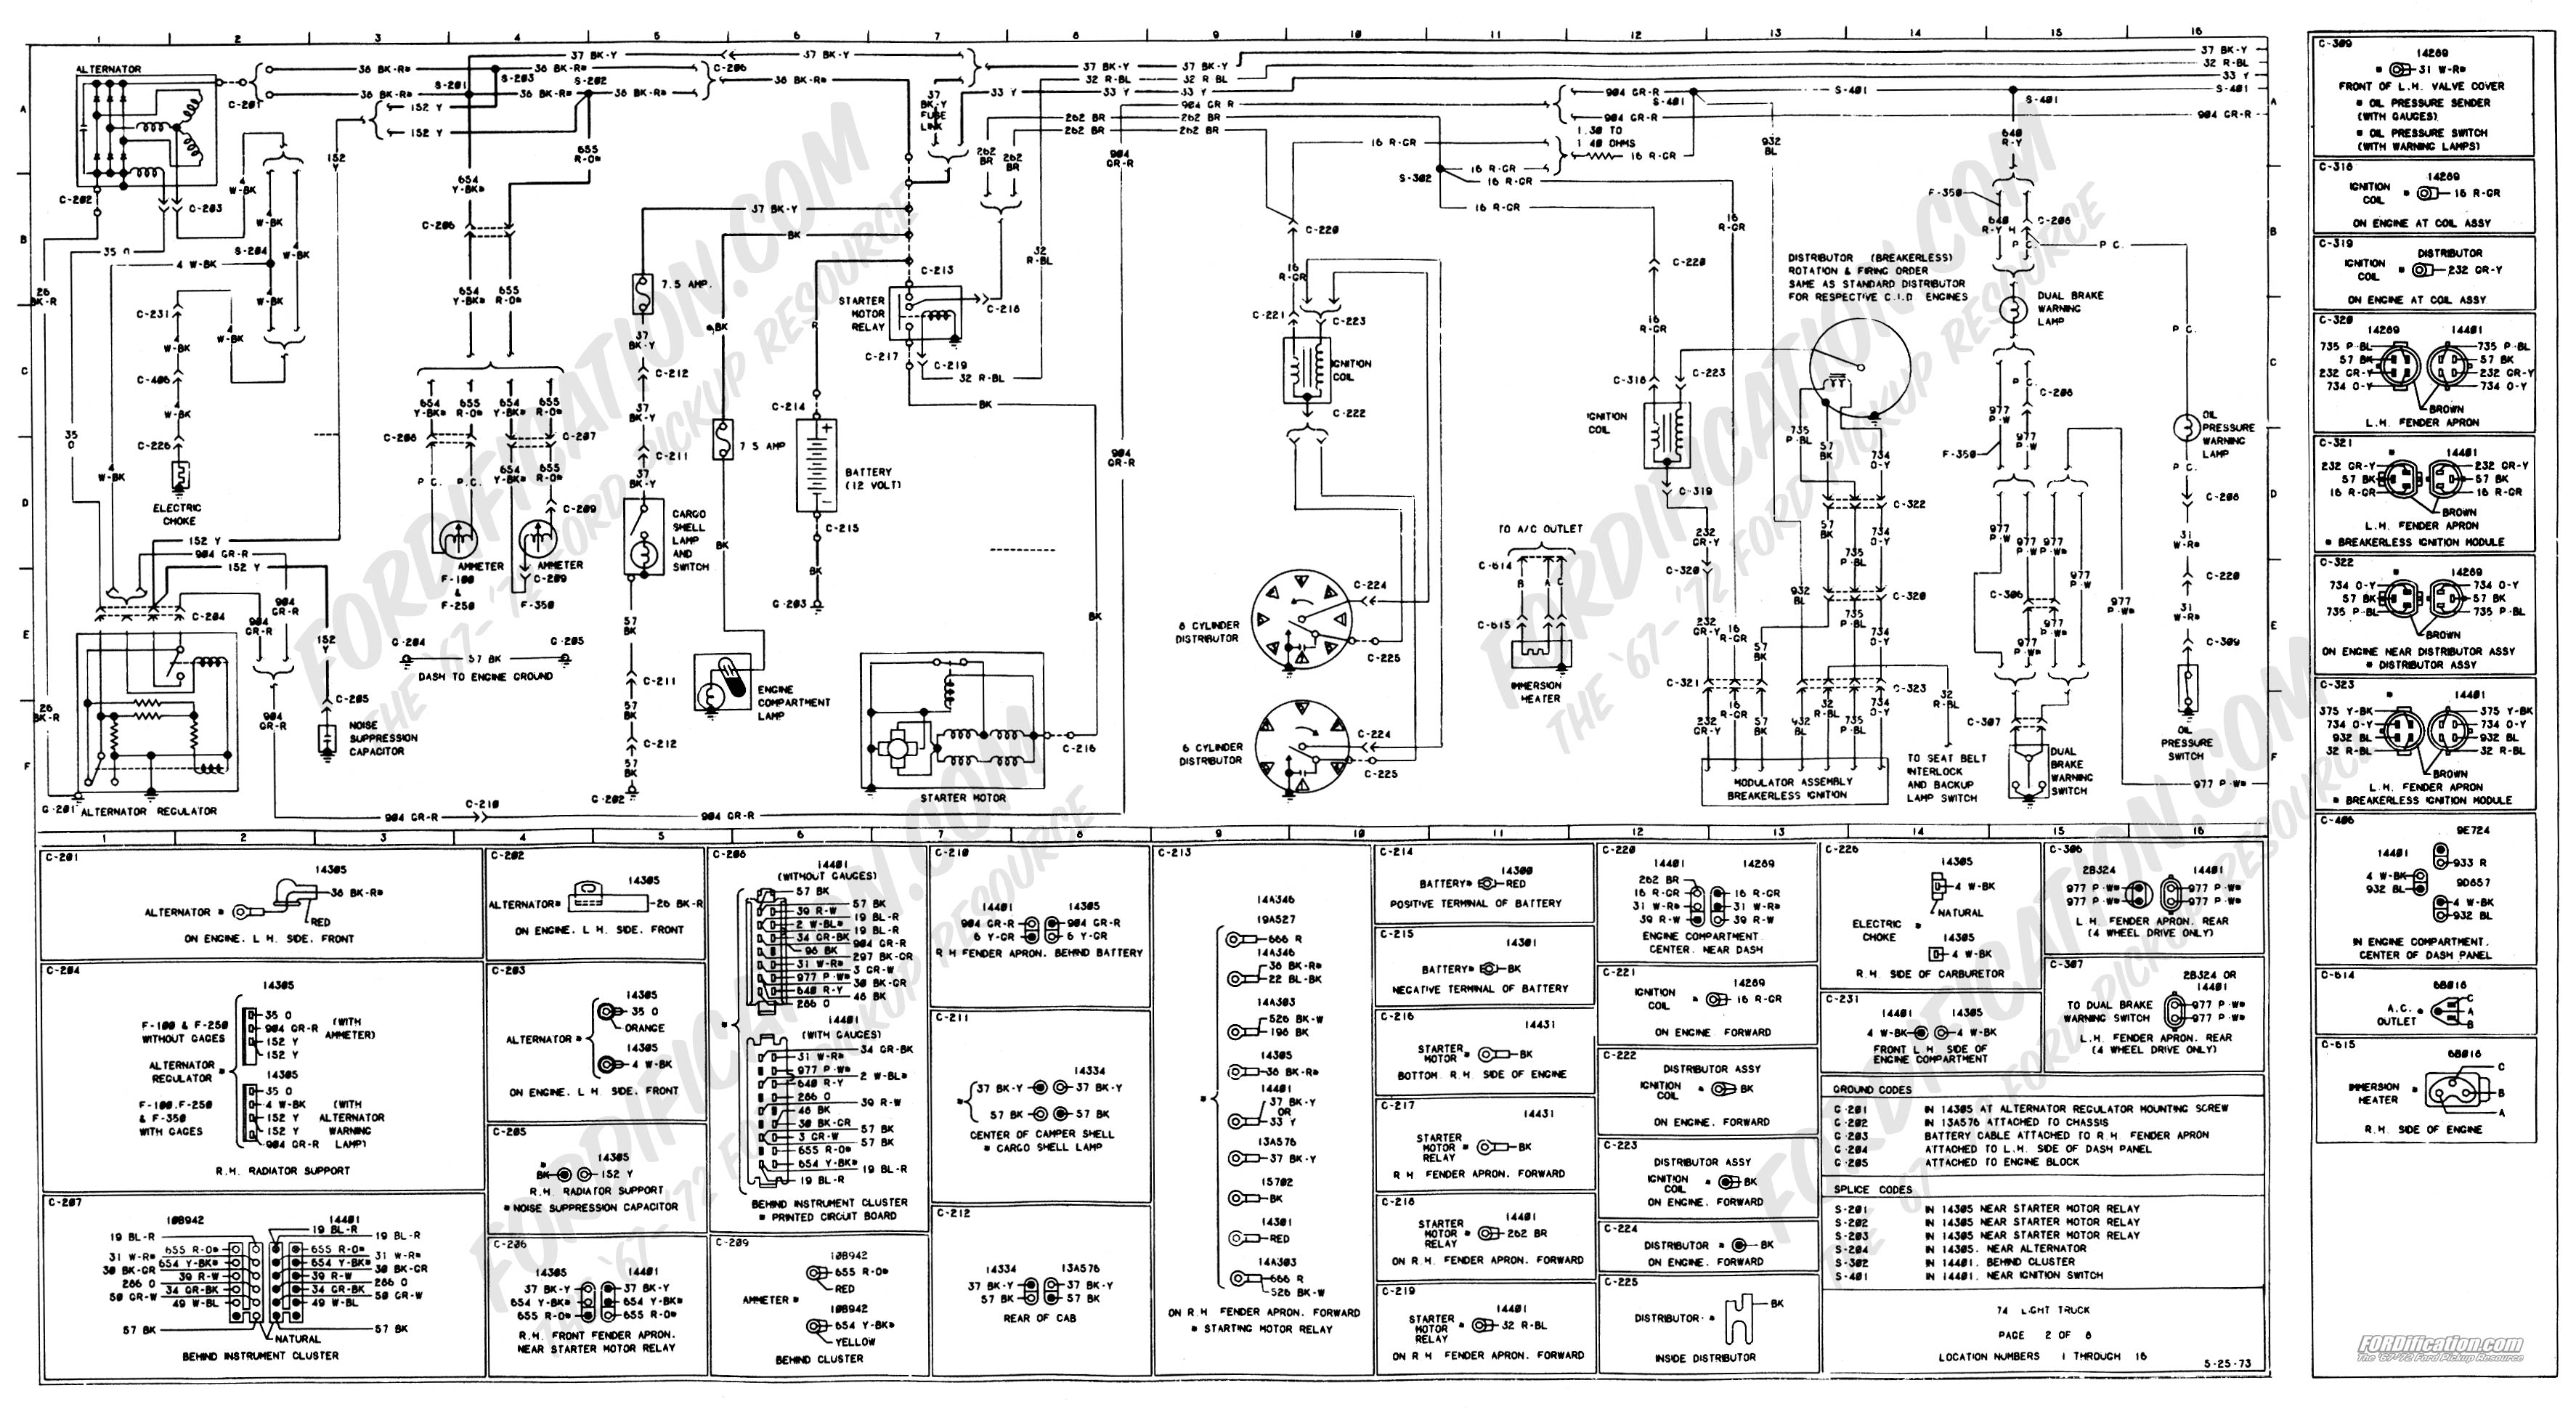 1974 ford wiring diagram wiring diagram general Wiring Diagram for 1966 Ford Mustang